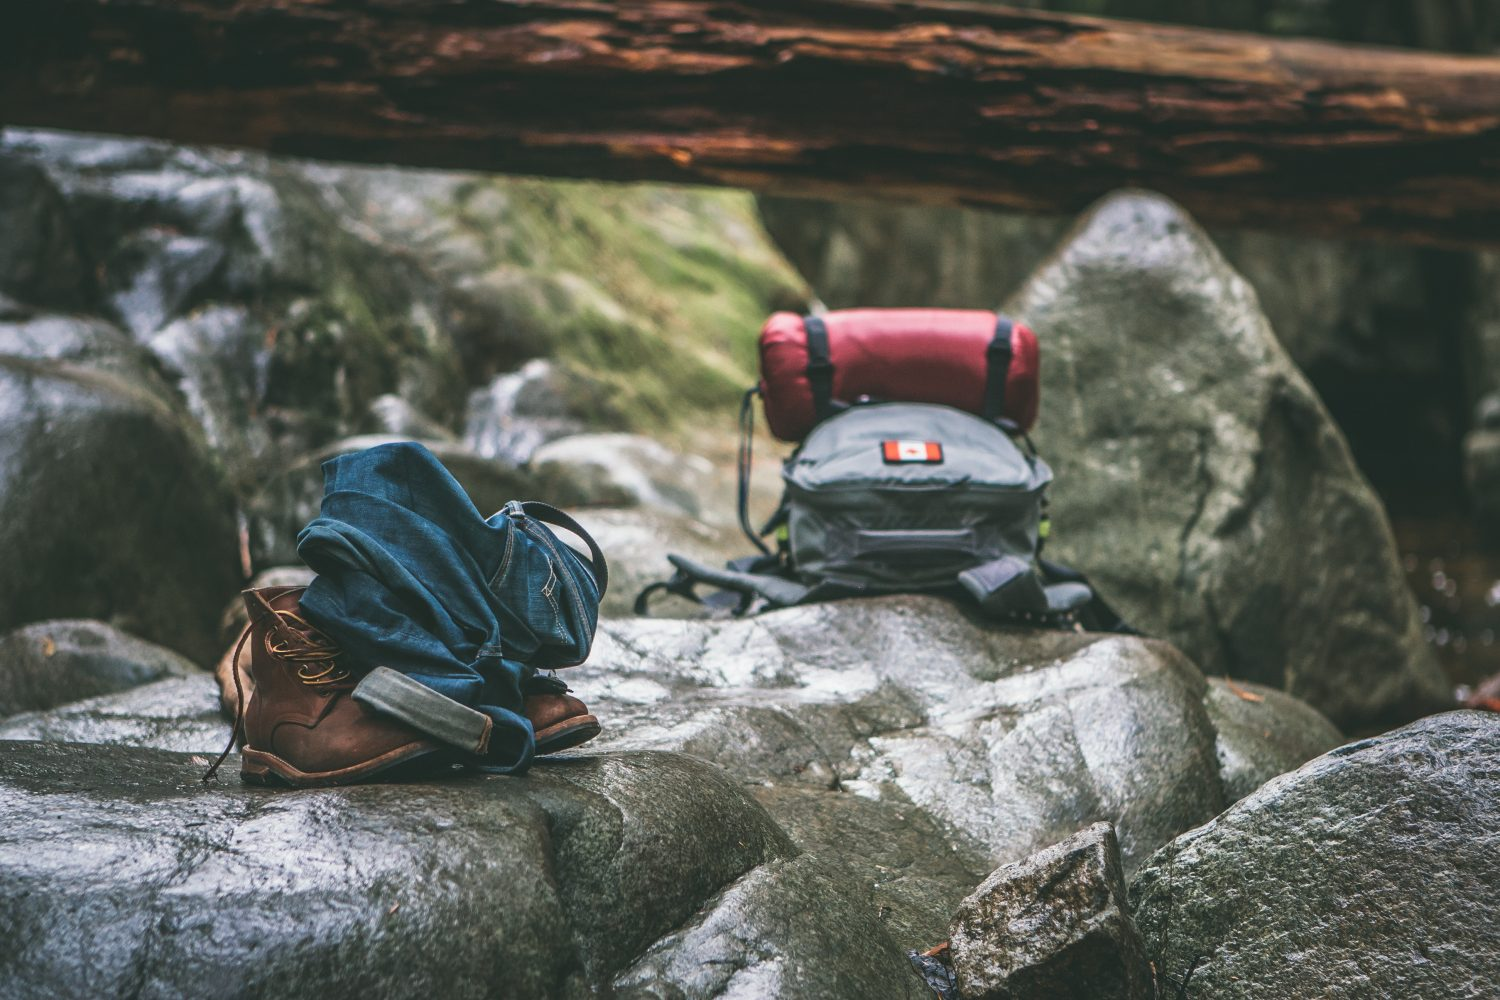 Select the Right Hiking Gear